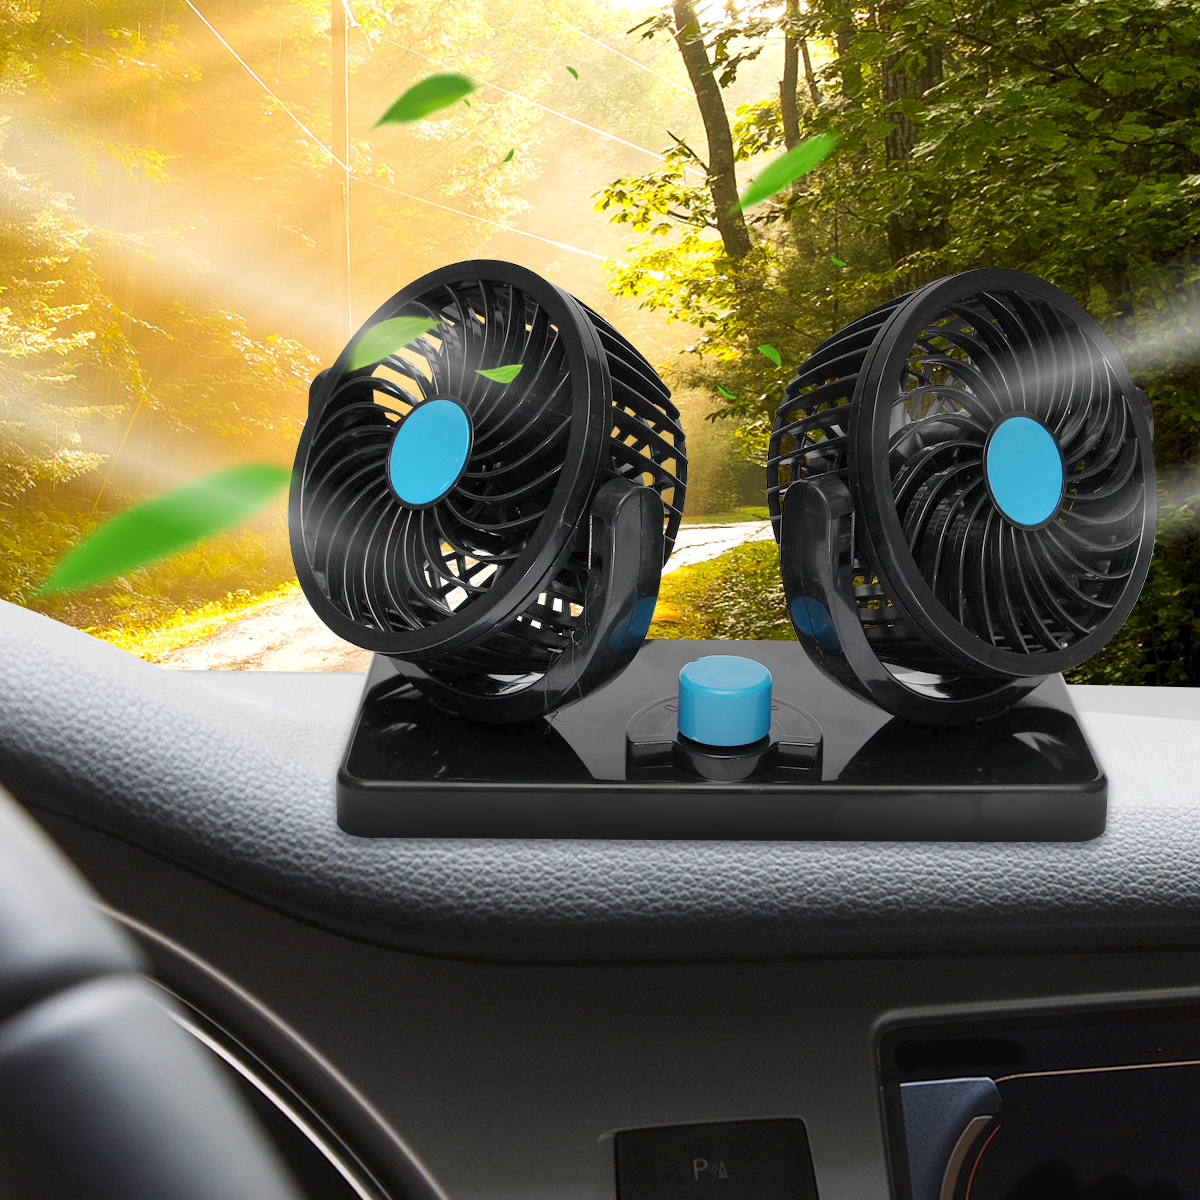 12V Car Mini Electric Fan 2 Head 360 Degree Rotating Low Noise Summer Conditioner Portable Adjustable Car Air Cooling Fan 3 type air cooling clip fan or 360 degree rotating 2 gears adjustable car fan or suction cup adsorption fans